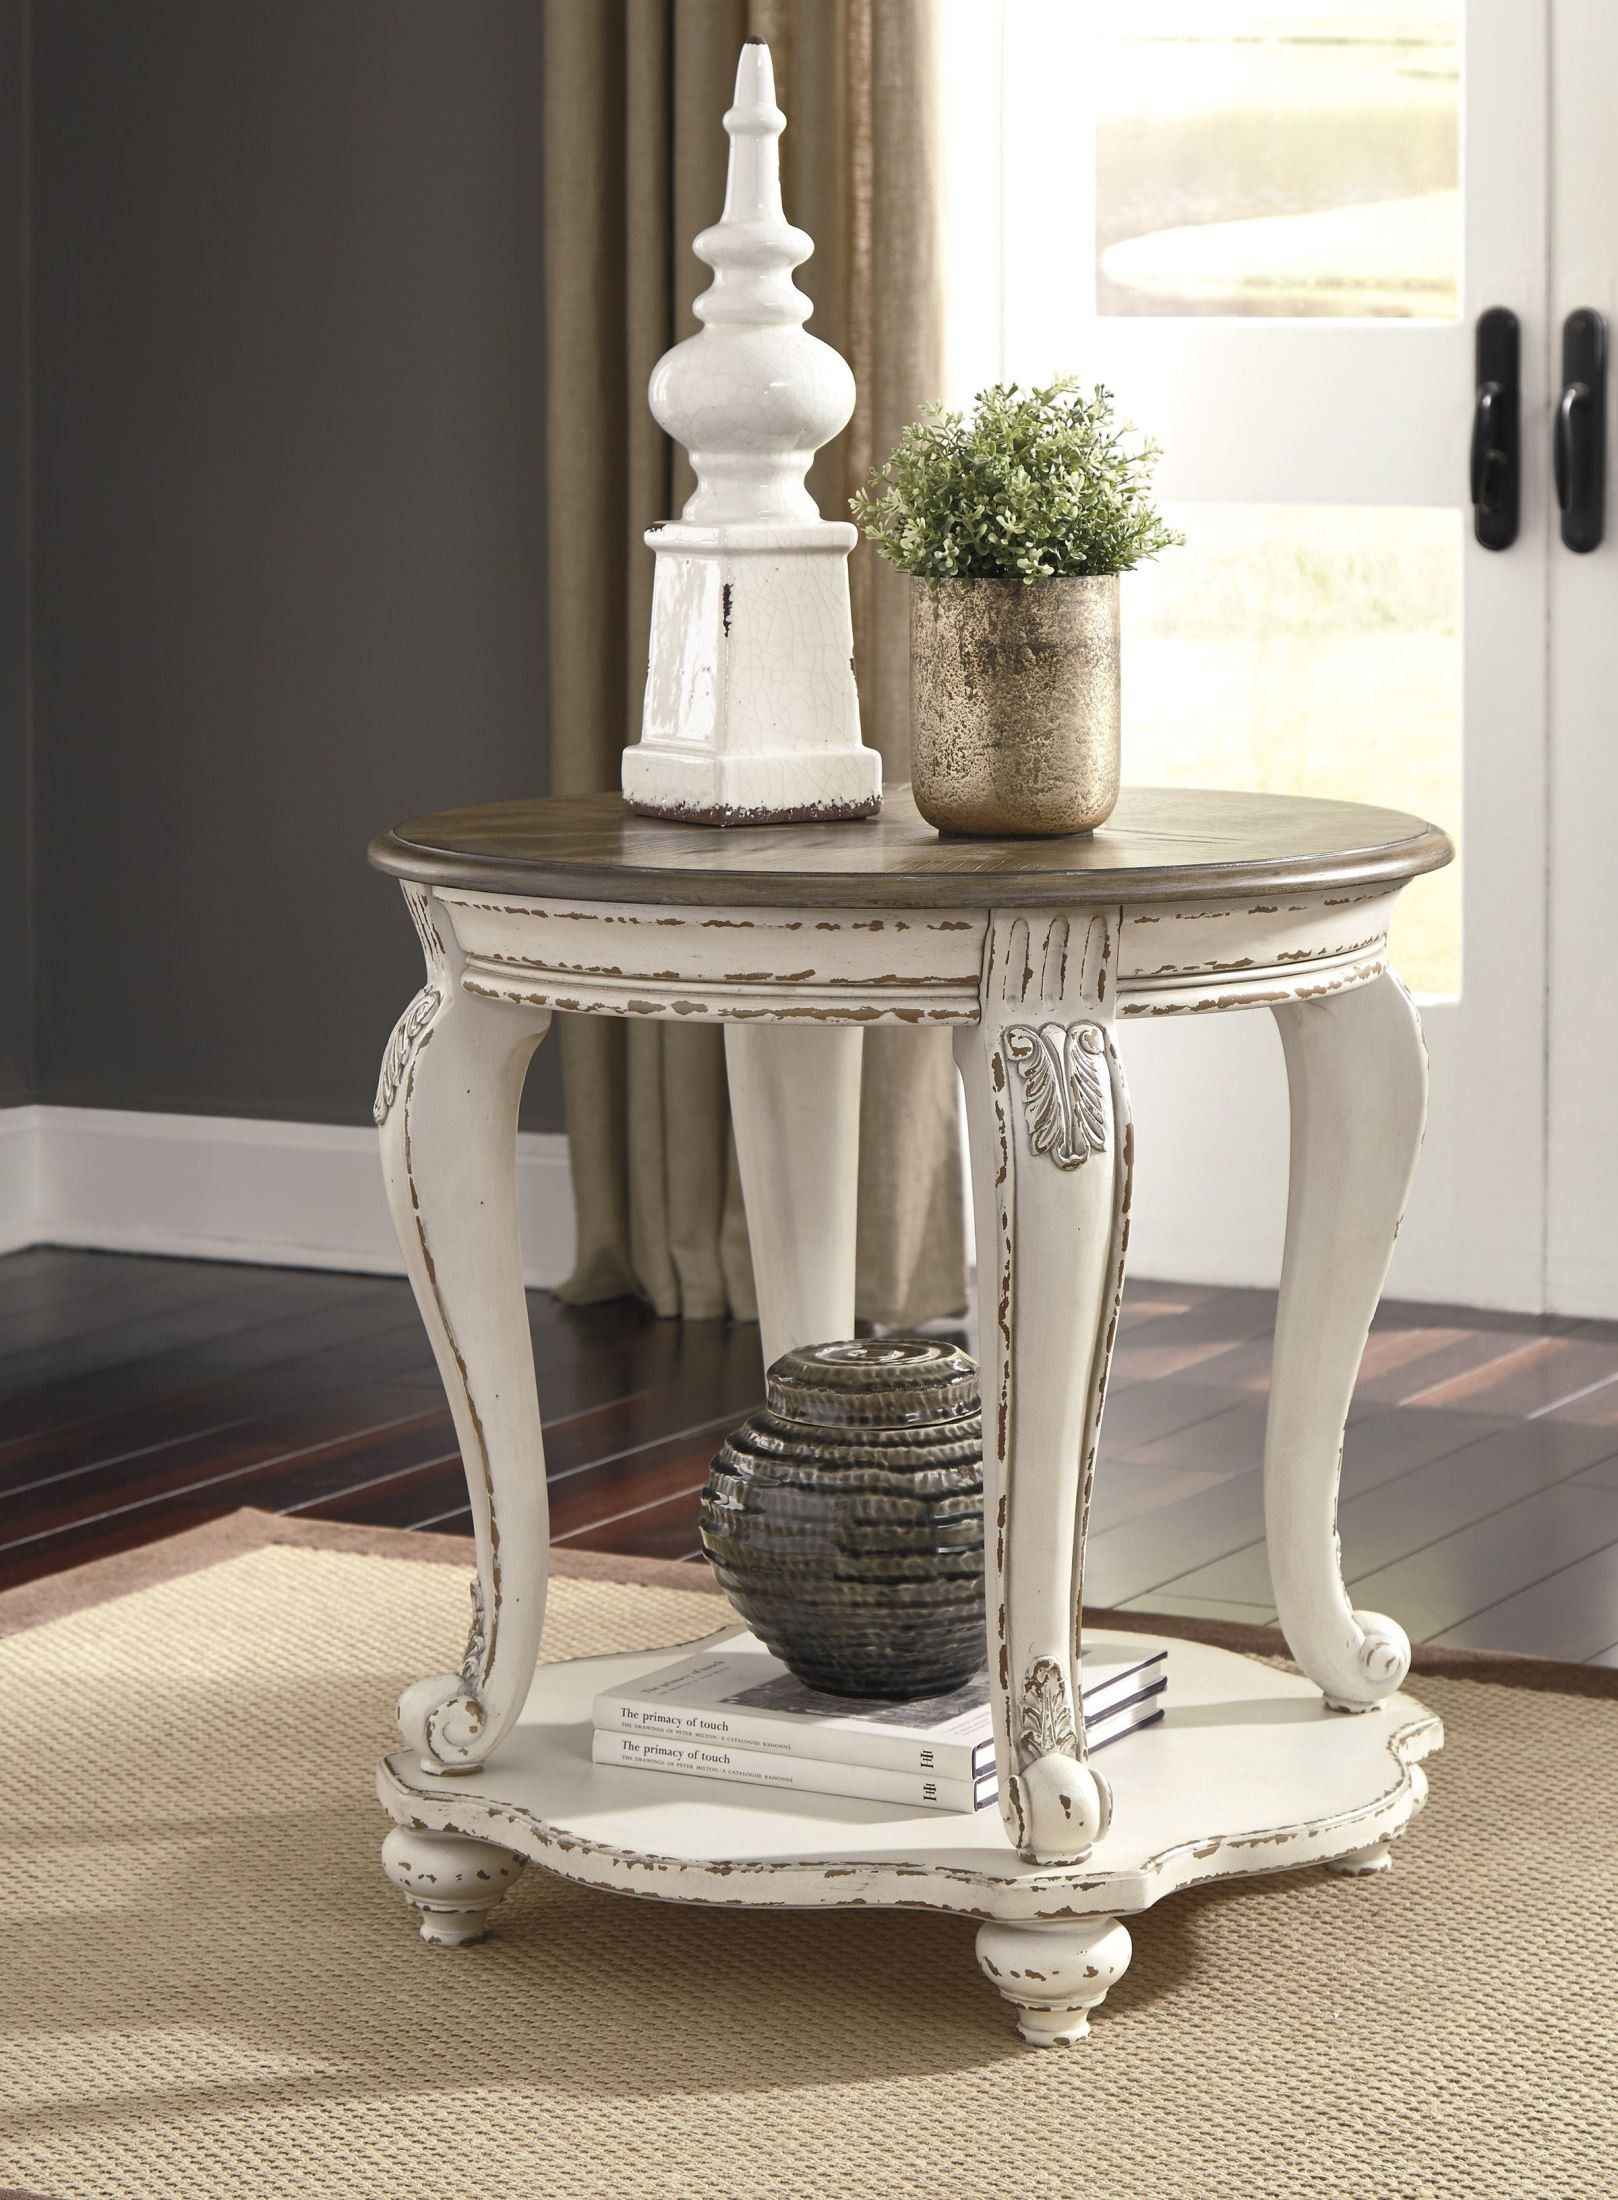 Realyn White and Brown Round End Table Living room end